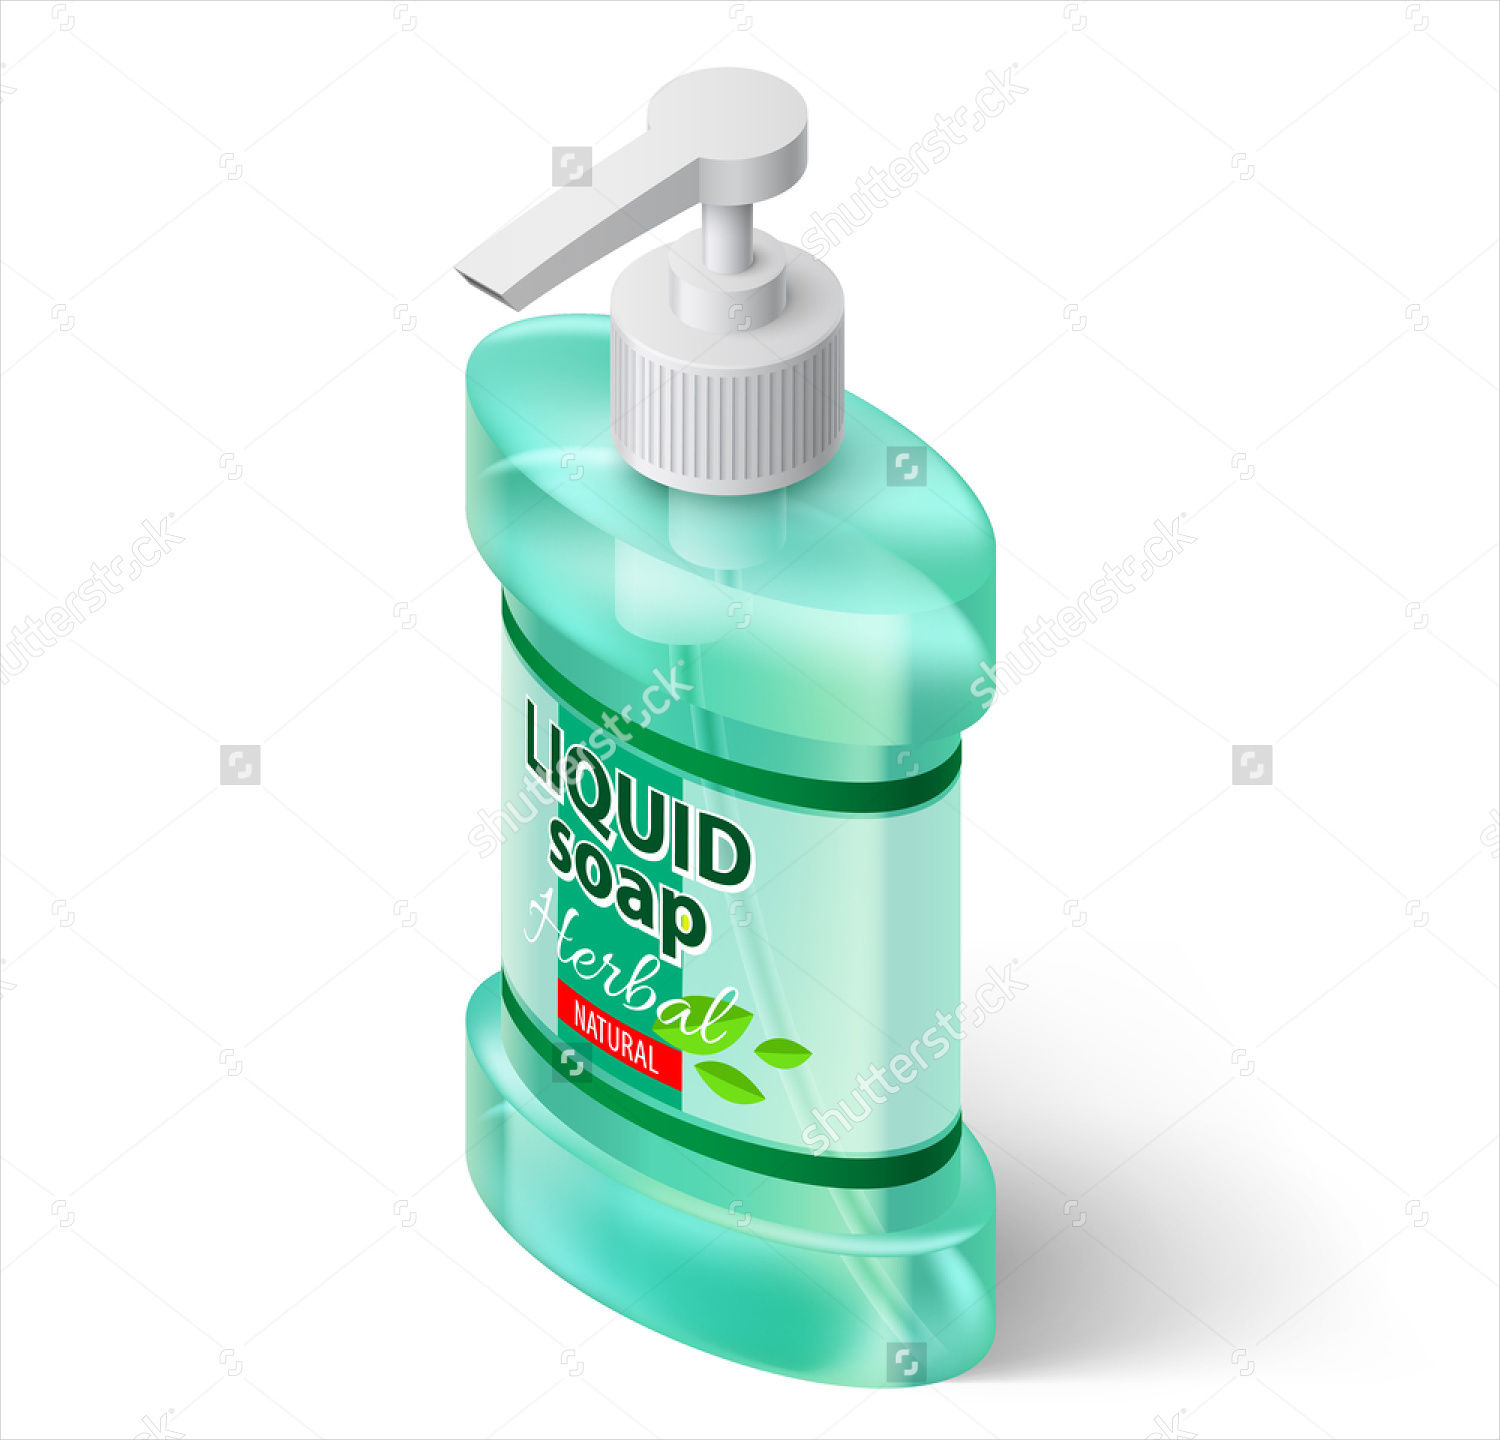 liquid hand soap label design